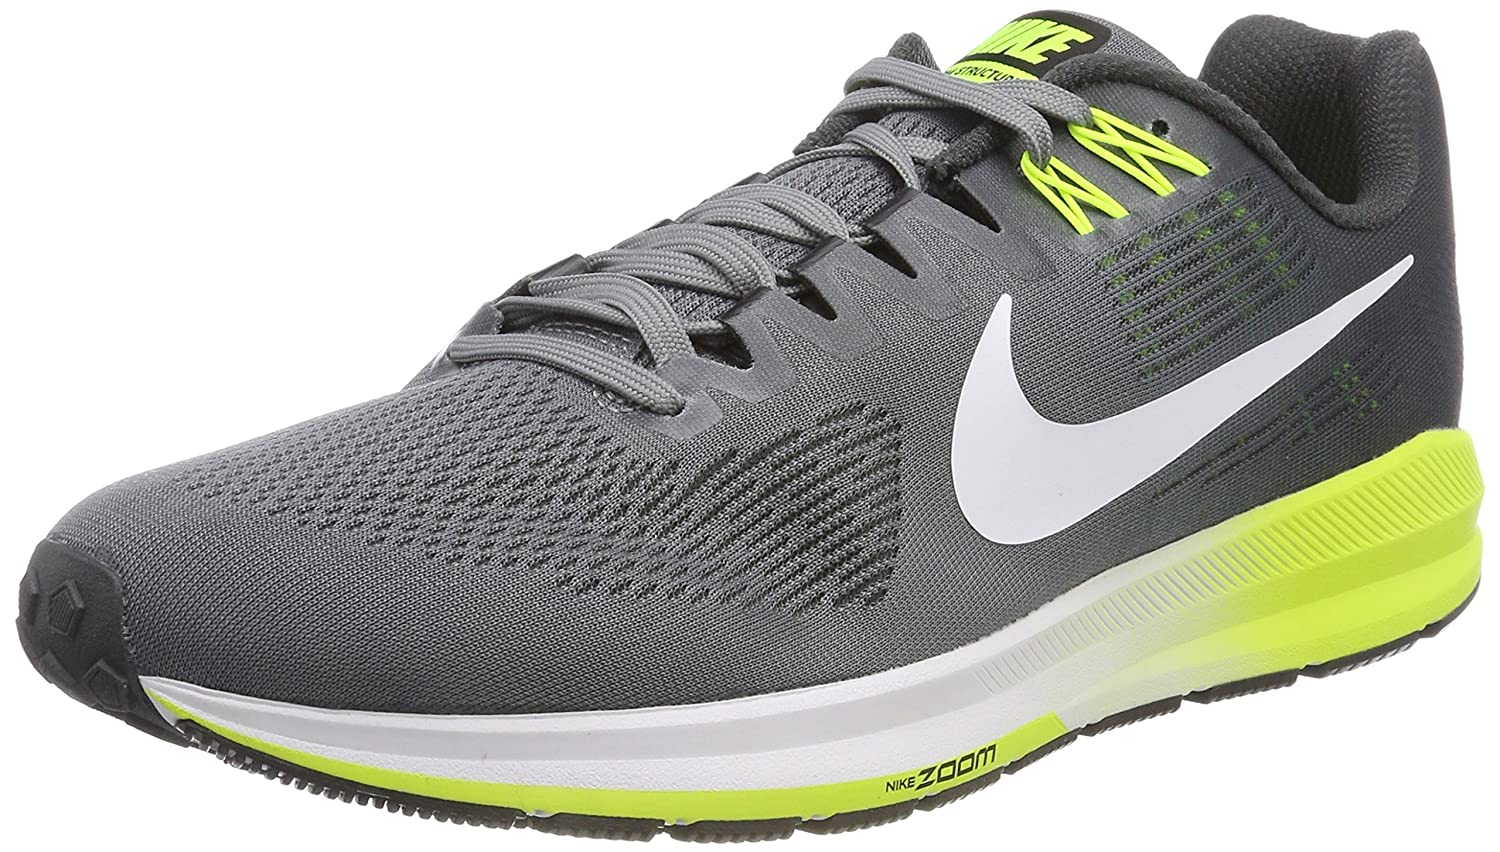 lowest price 2927c cb281 Nike Men s Air Zoom Structure 21 Running Shoe Wide (2E) Cool Grey White- Anthracite-Volt 12.5  Buy Online at Low Prices in India - Amazon.in